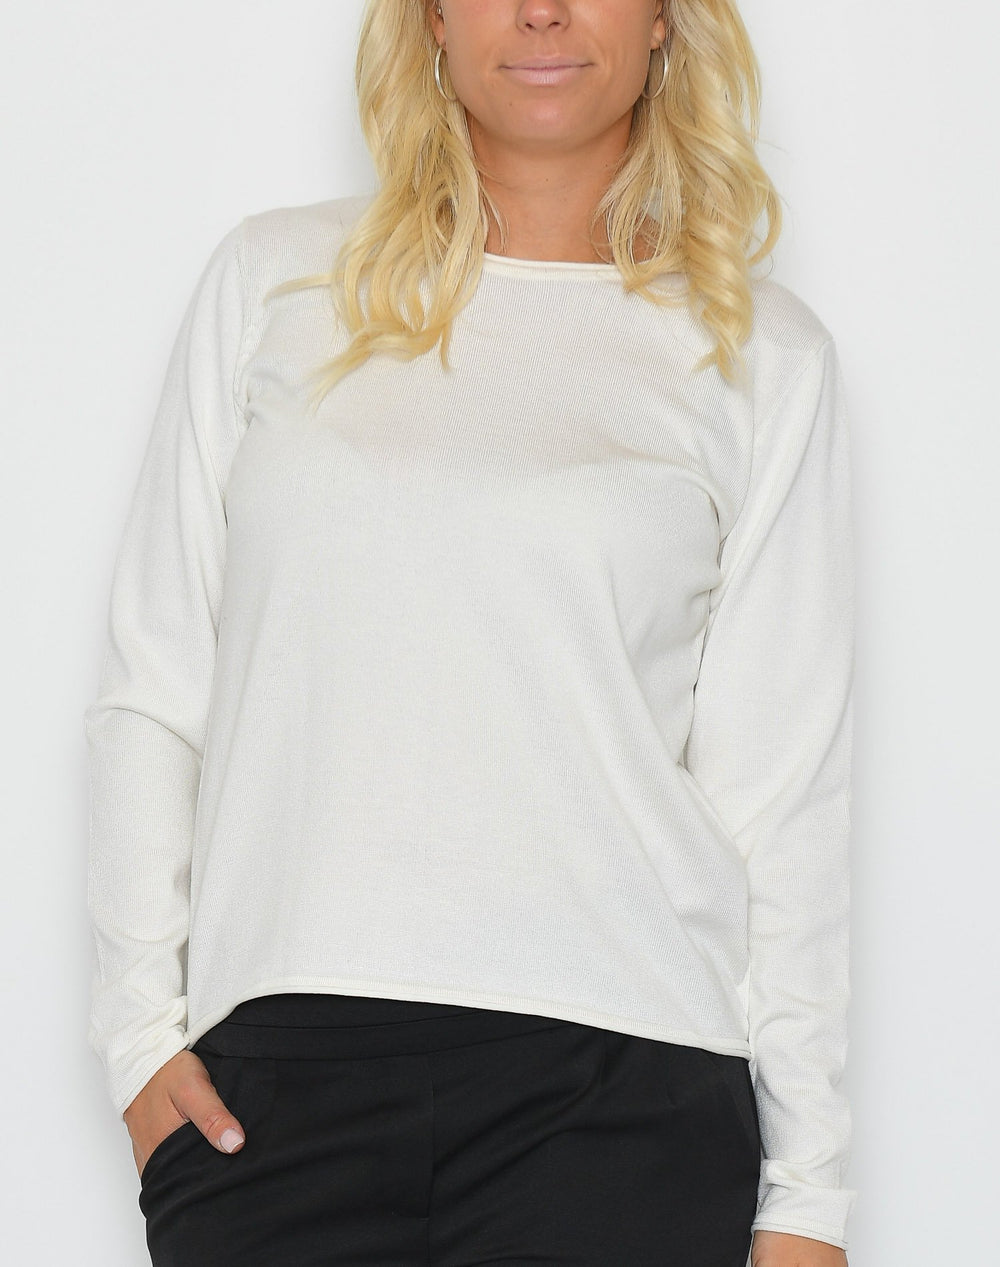 Soft Rebels Zara o-neck knit roll edge off white - Online-Mode